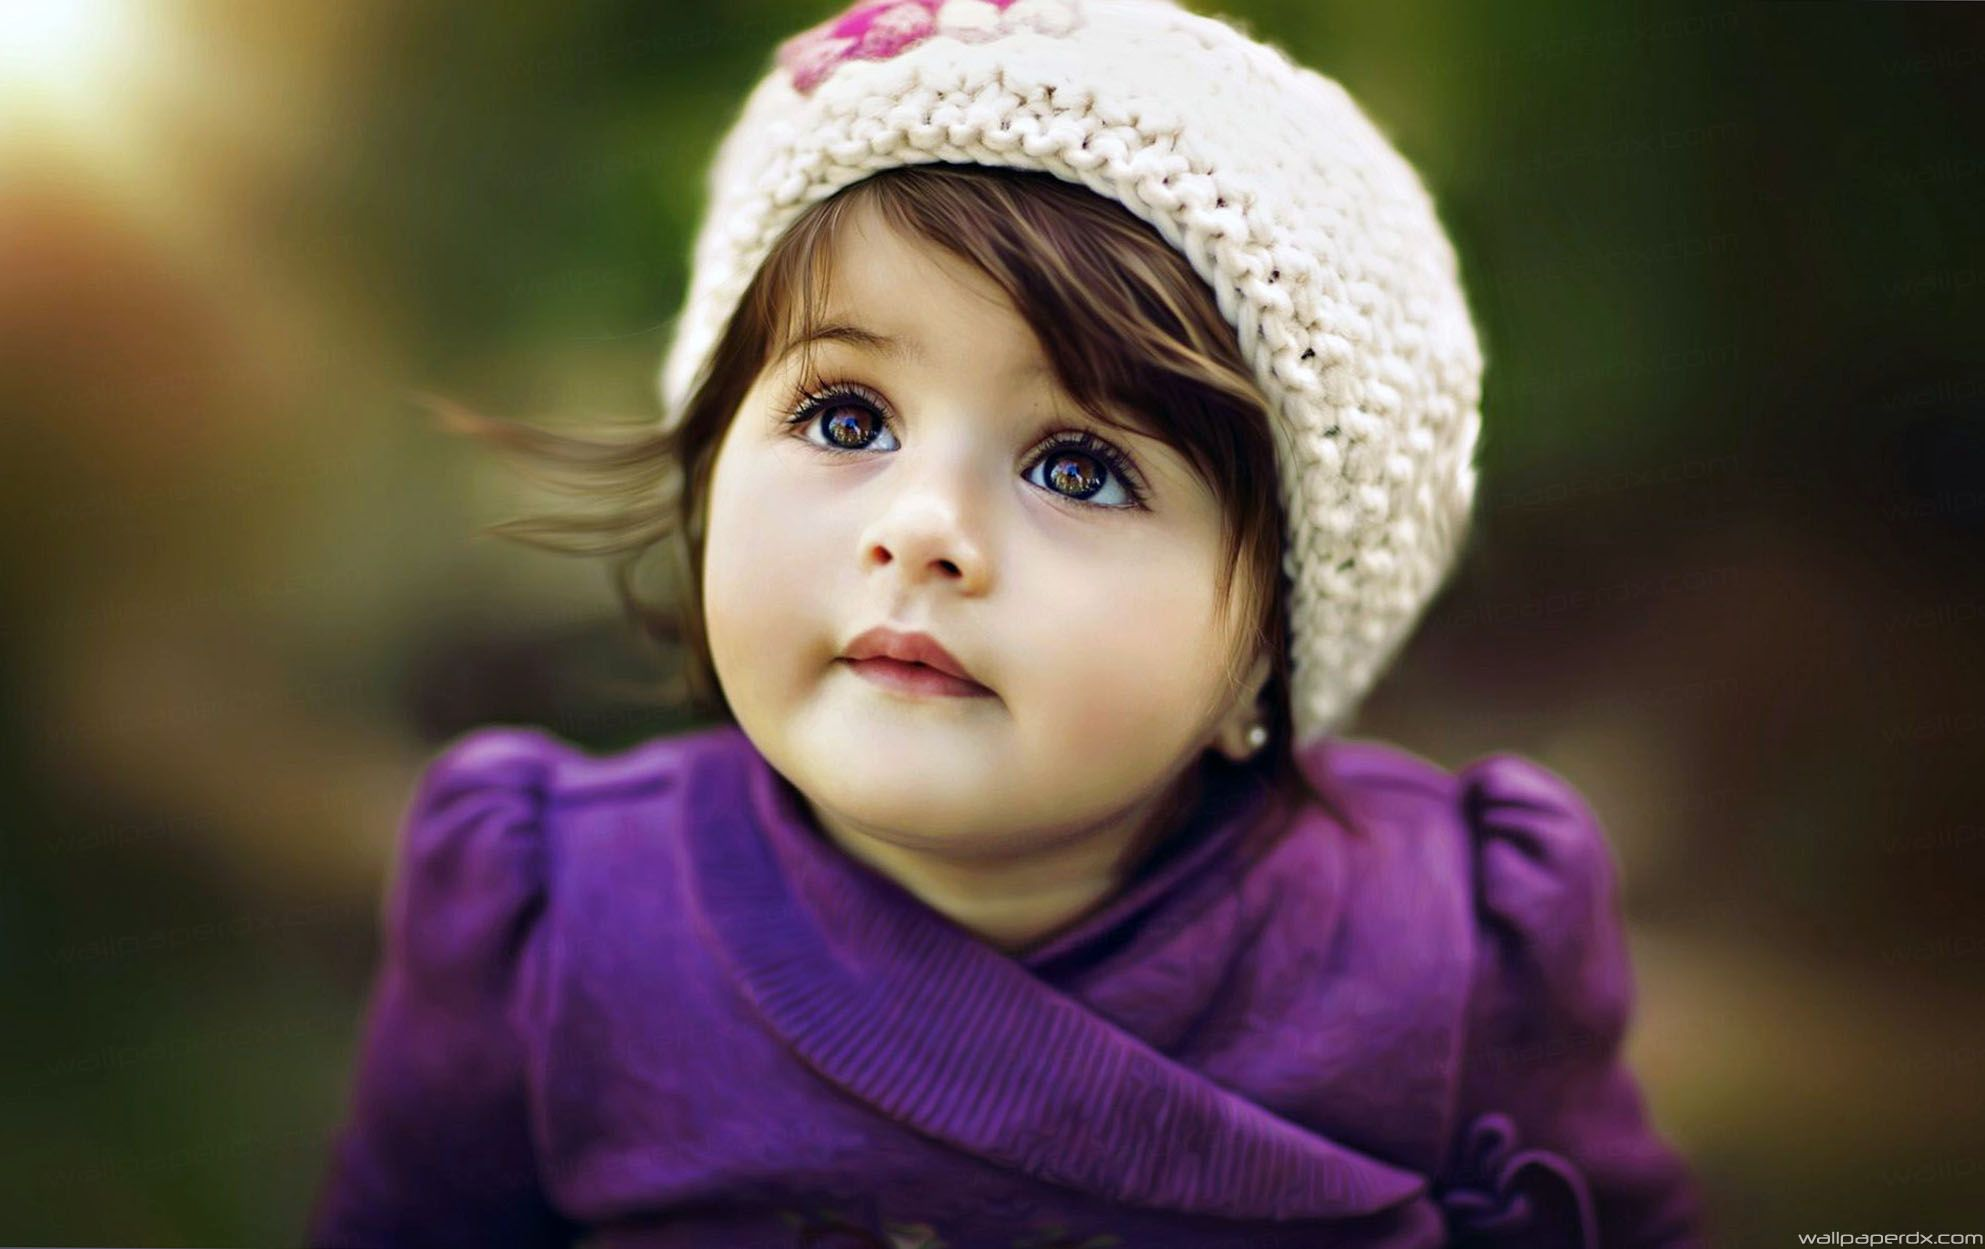 Lovely baby face pretty cute full hd wallpaper sekil az